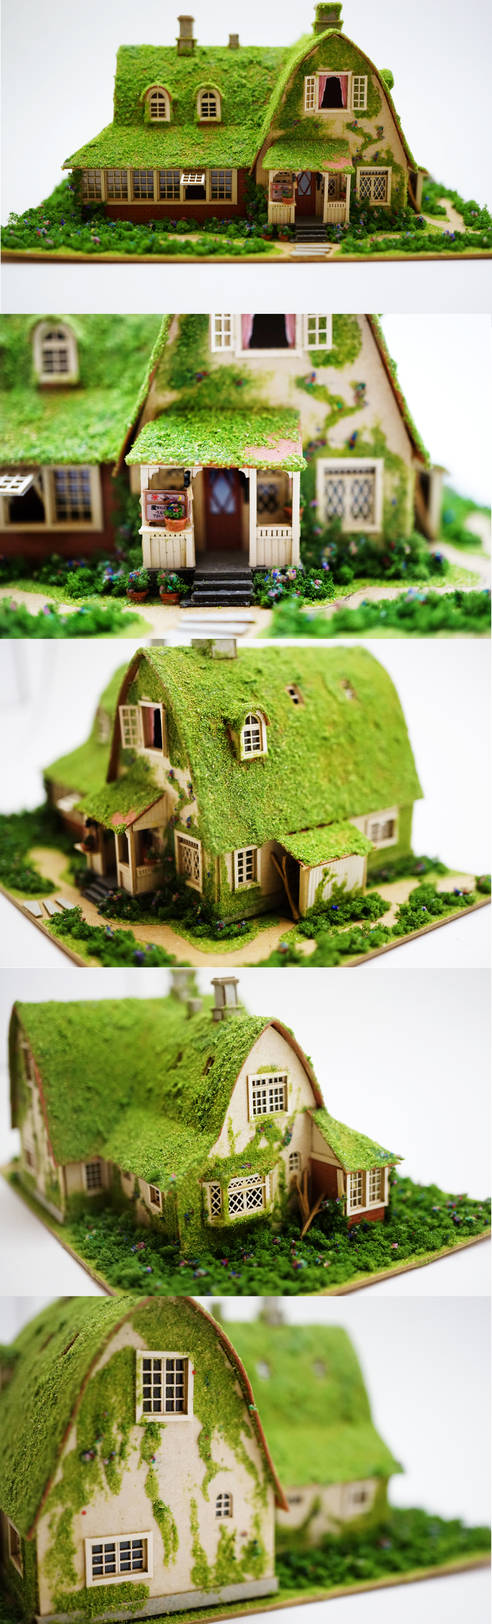 Miniature House - Kiki's Delivery (Close Ups)